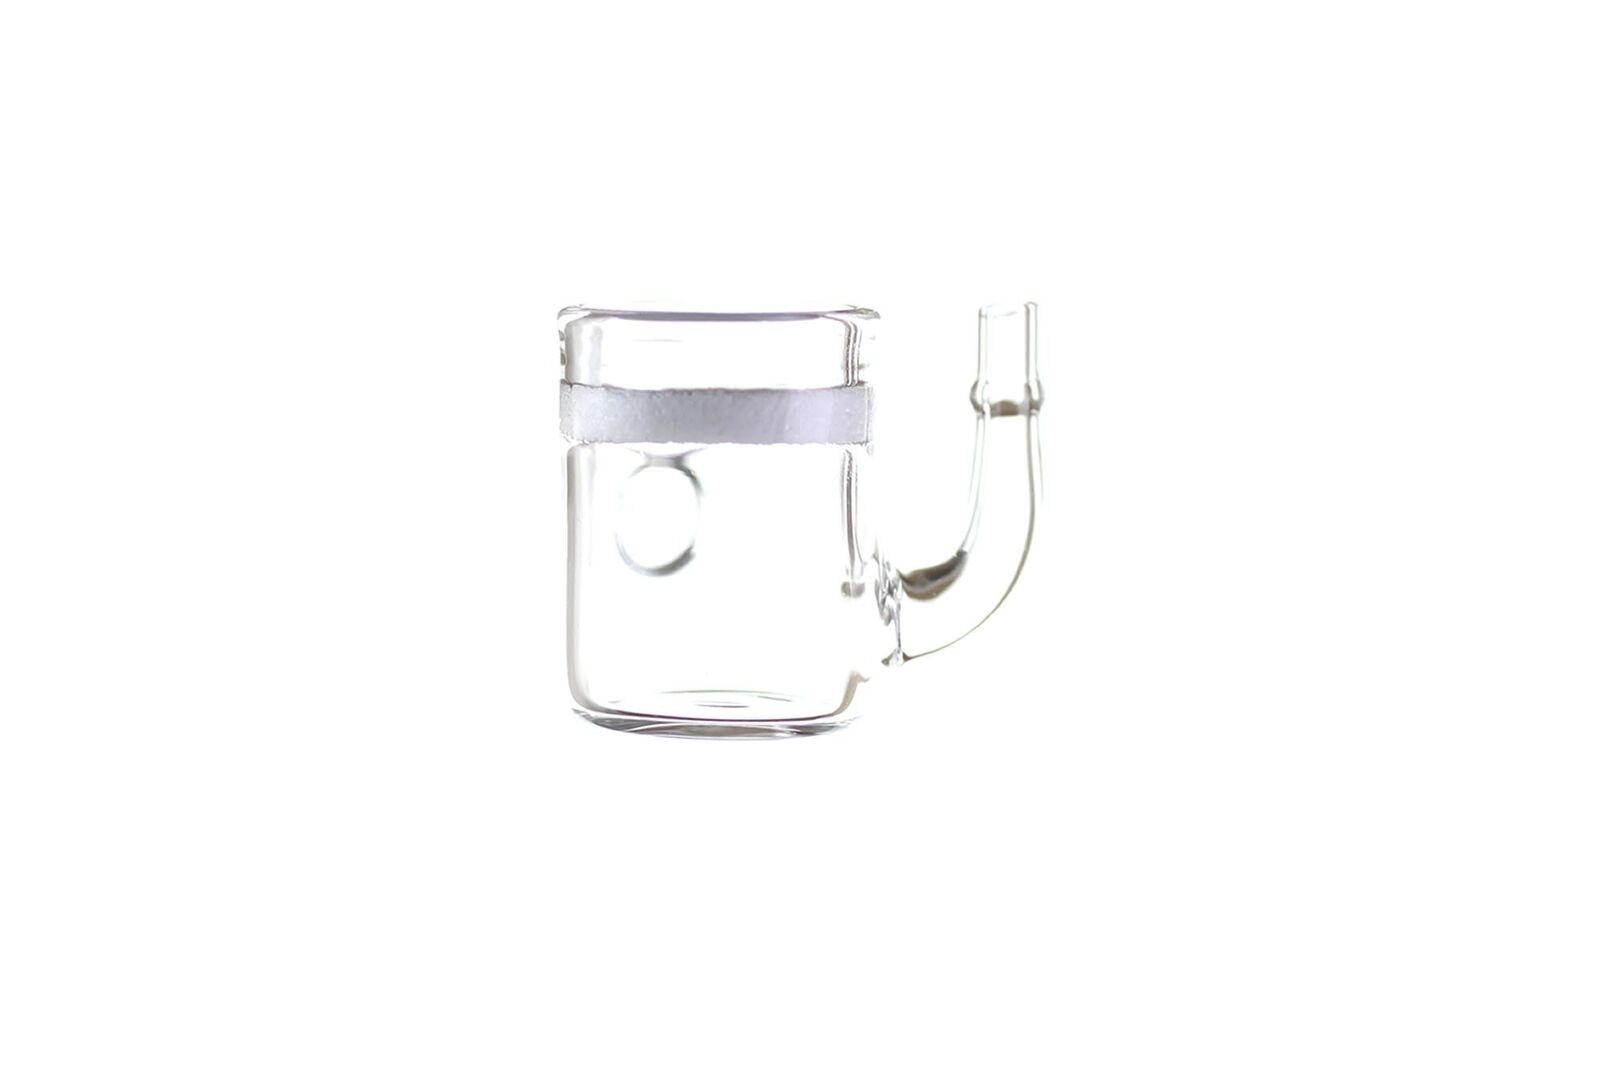 Flat-Bottom Glass CO2 Diffuser - Small for Aquariums up to 80L